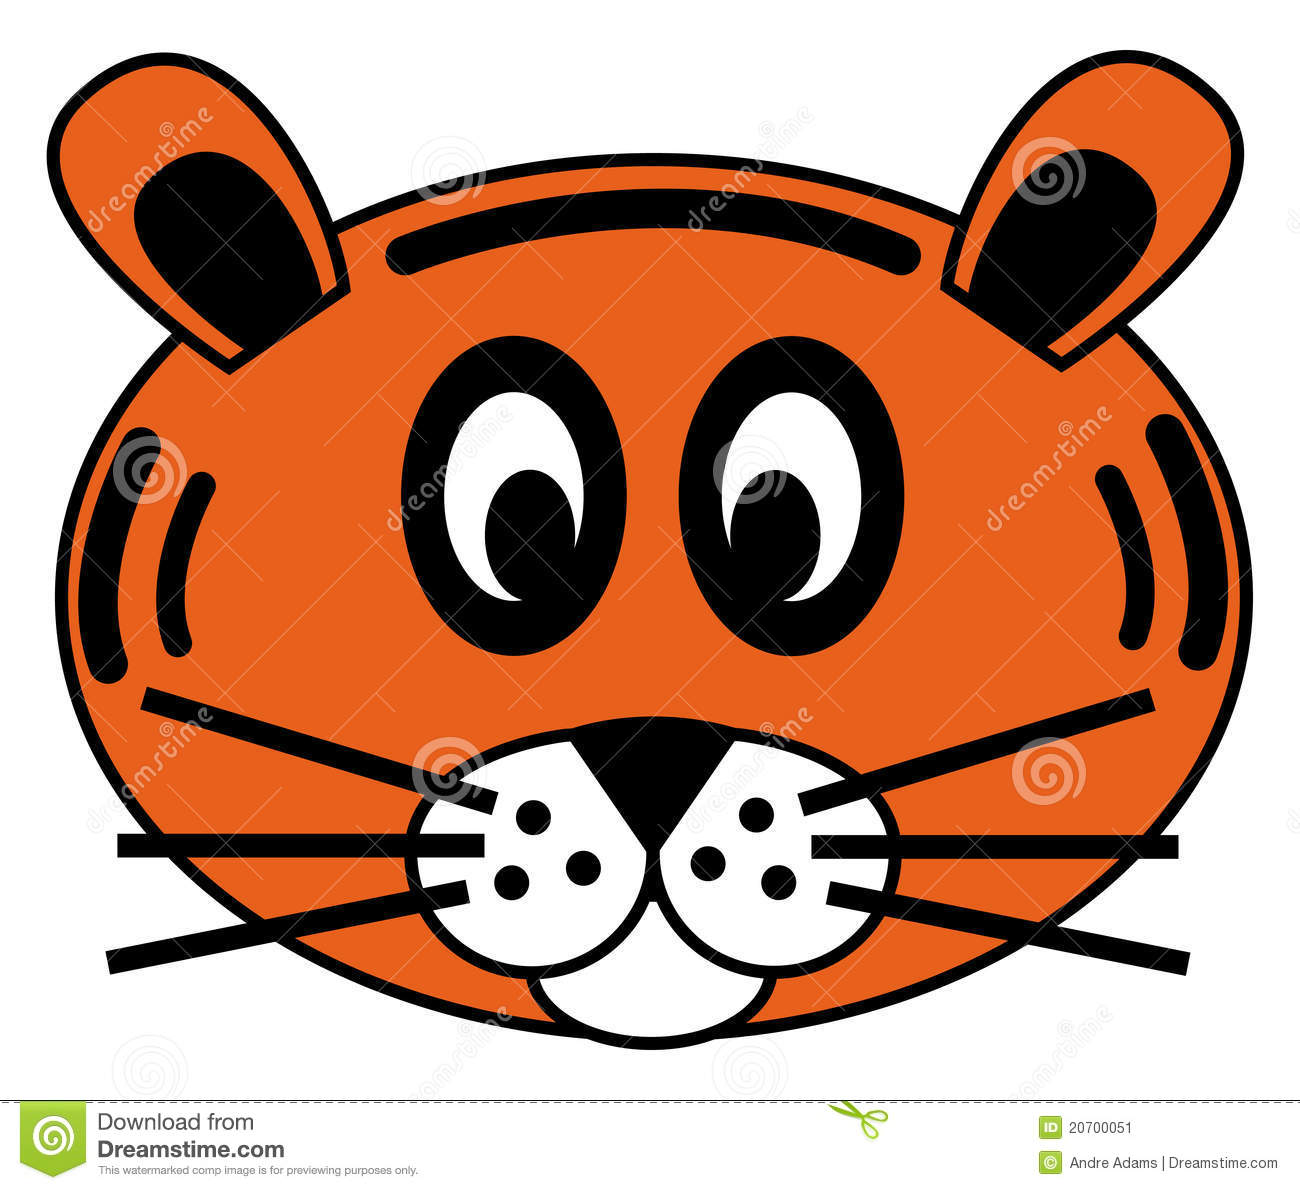 Tiger face stock vector. Image of mask, logo, tiger ...